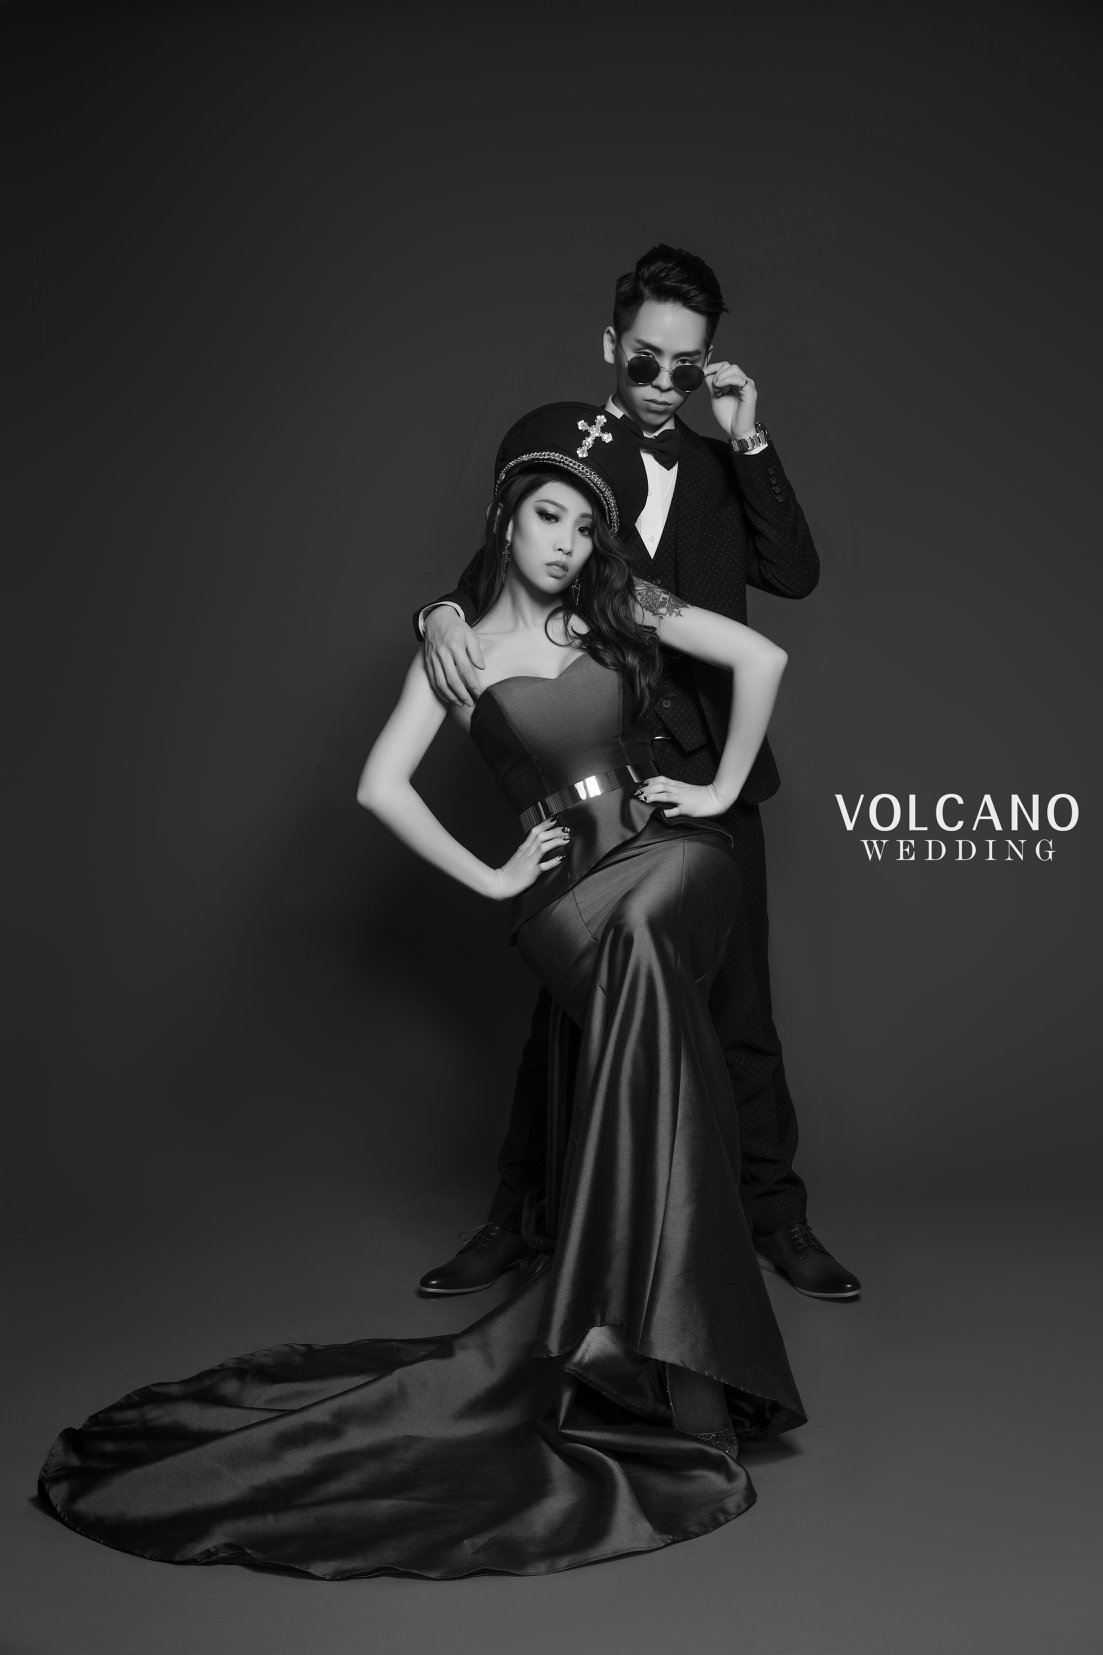 volcano wedding-Sarina